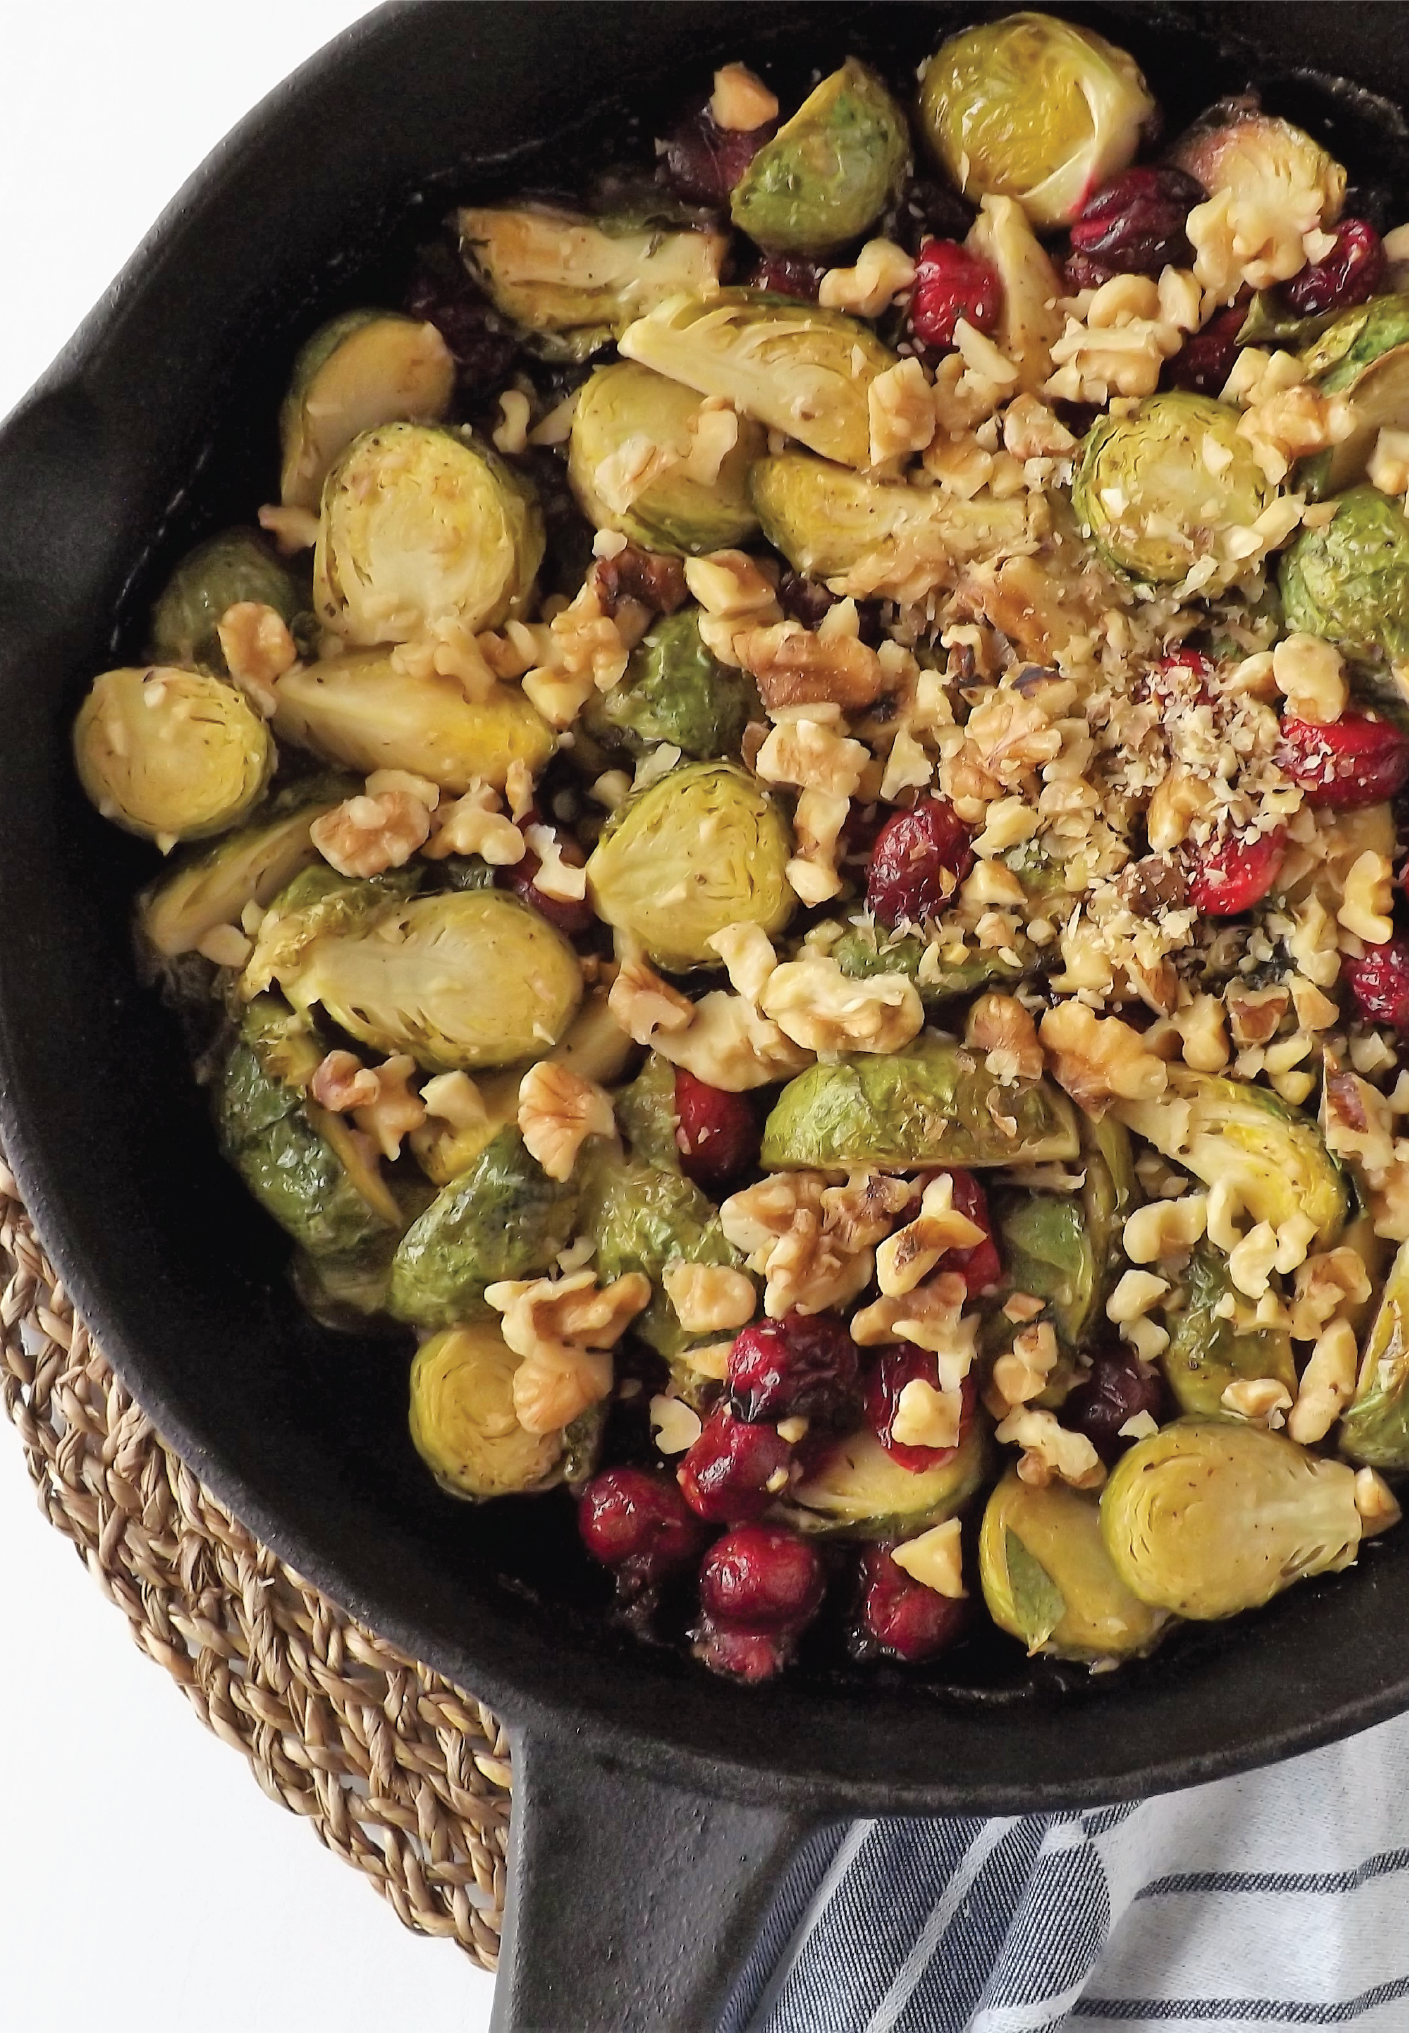 Finished pan of roasted brussel sprouts with maple, dijon, cranberries and walnuts.